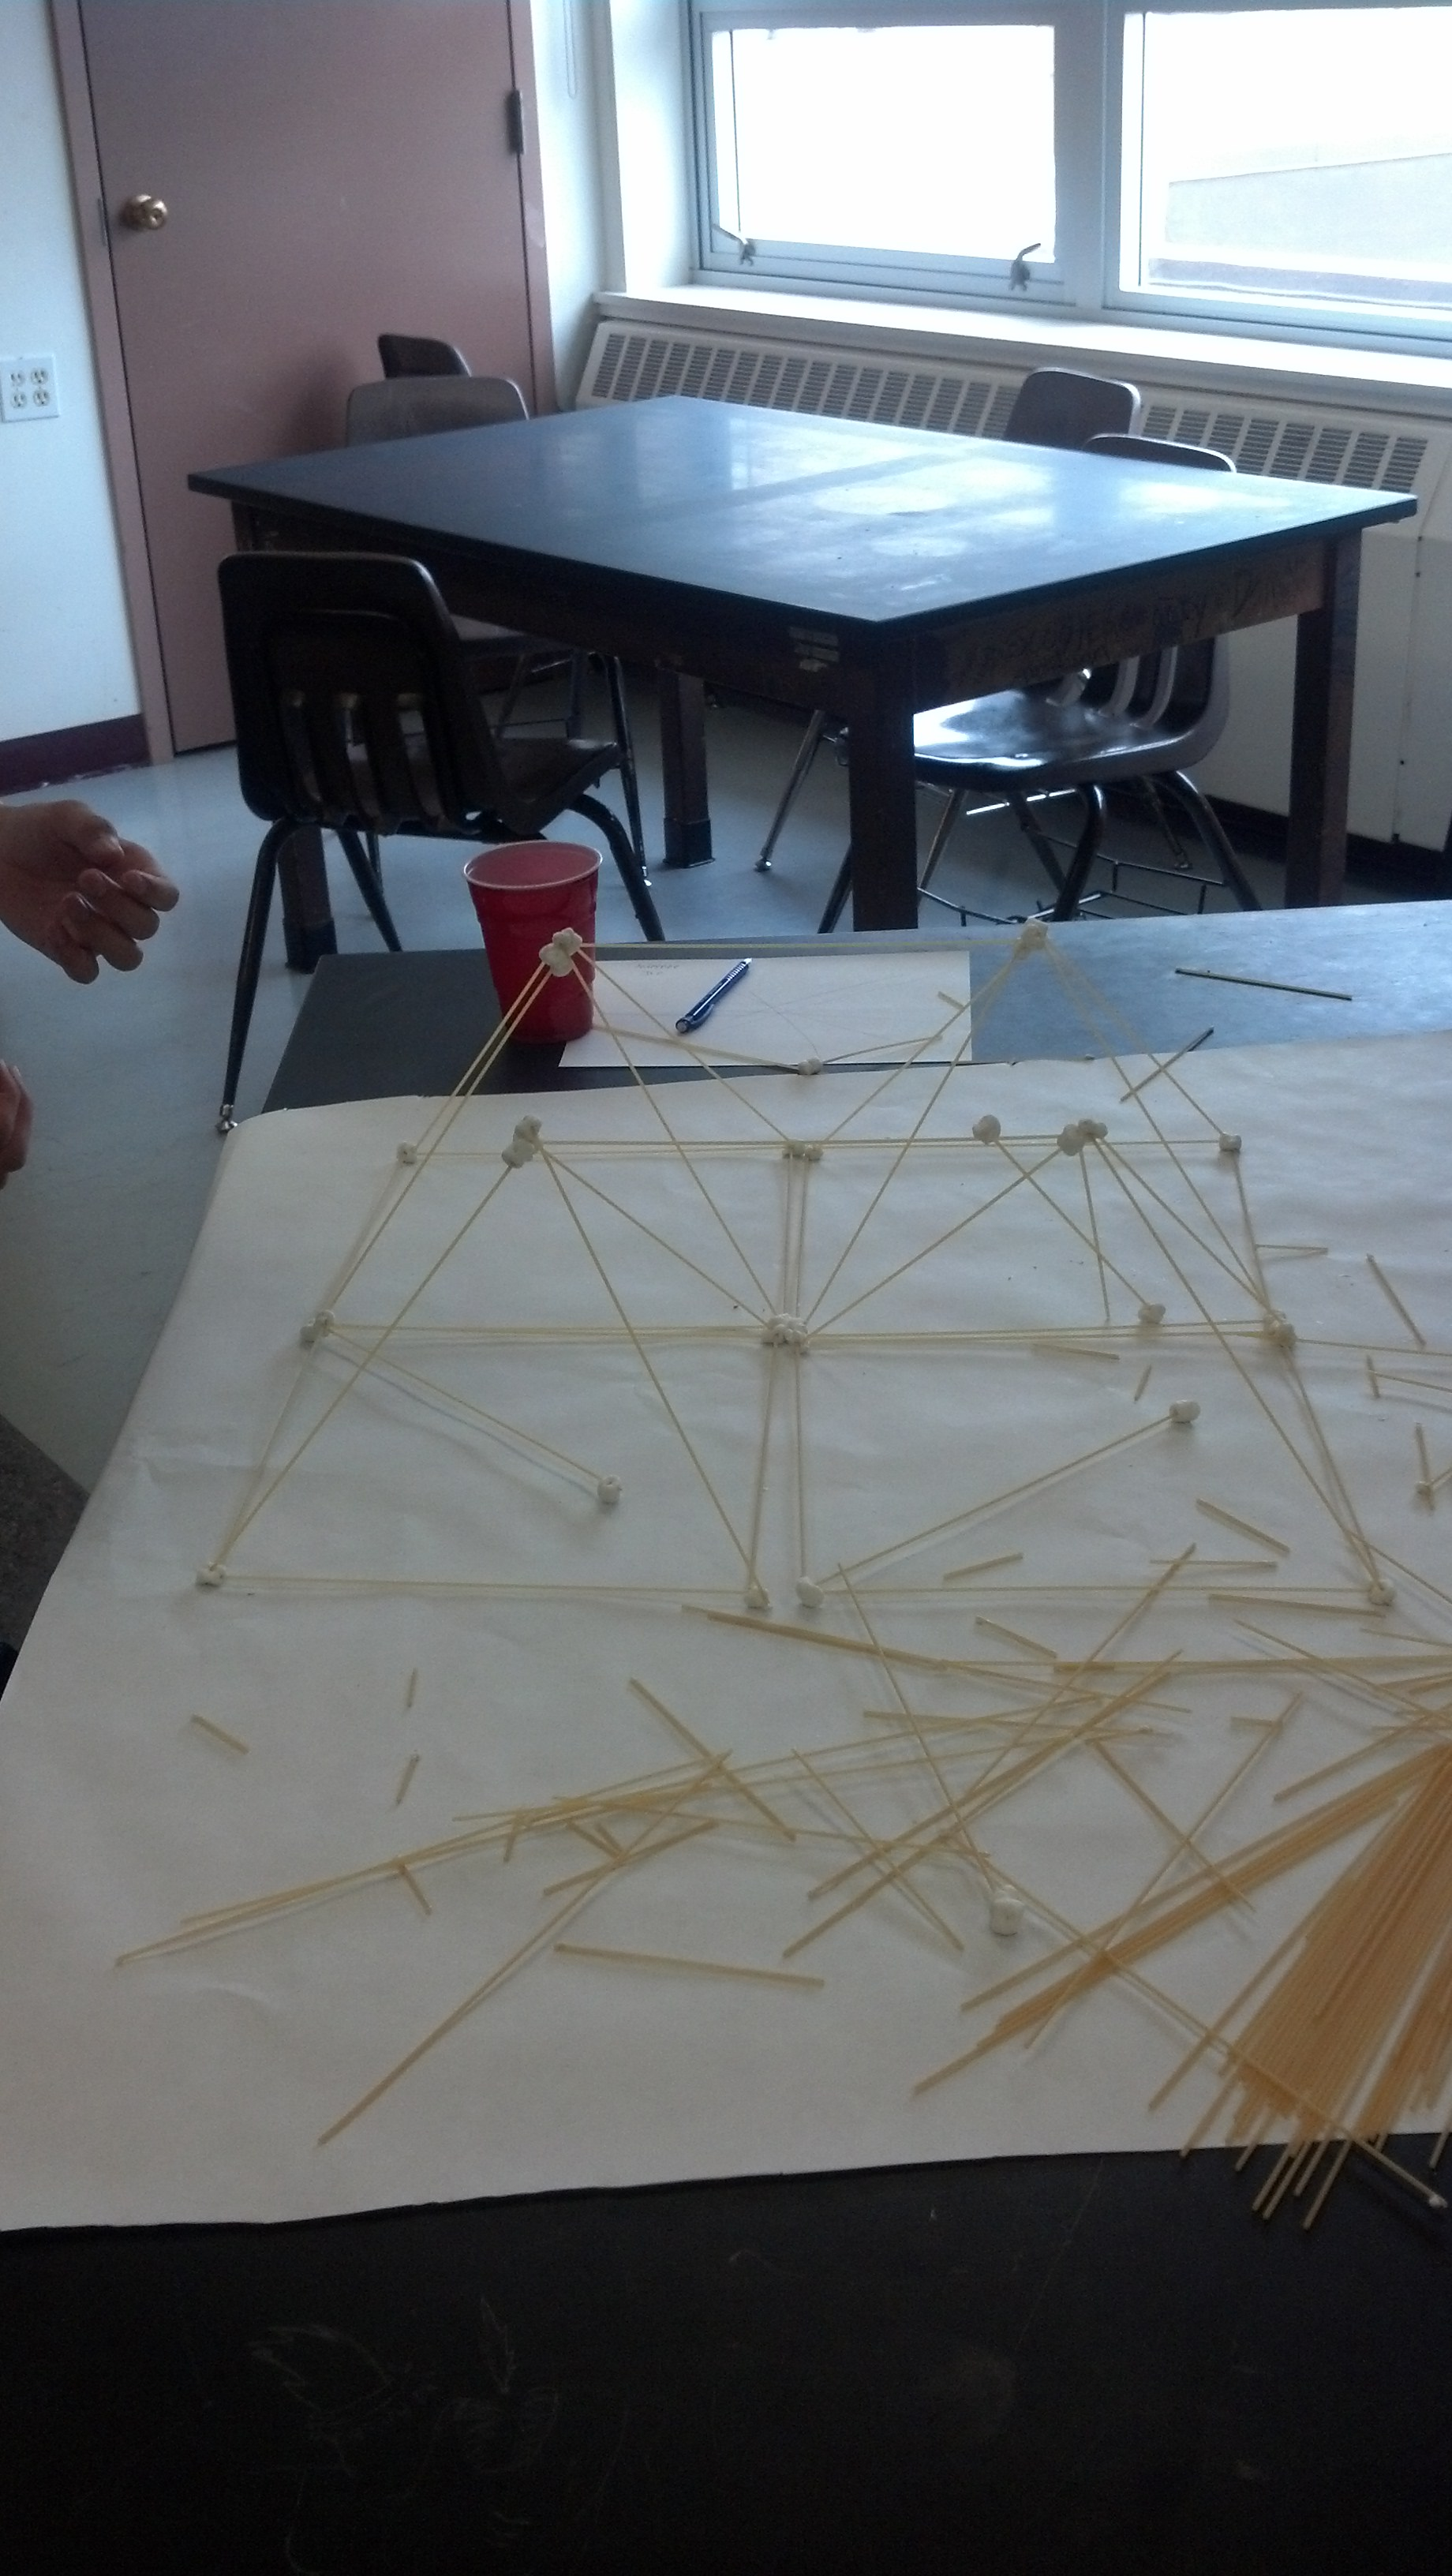 Get Inspired For Spaghetti And Mini Marshmallow Tower